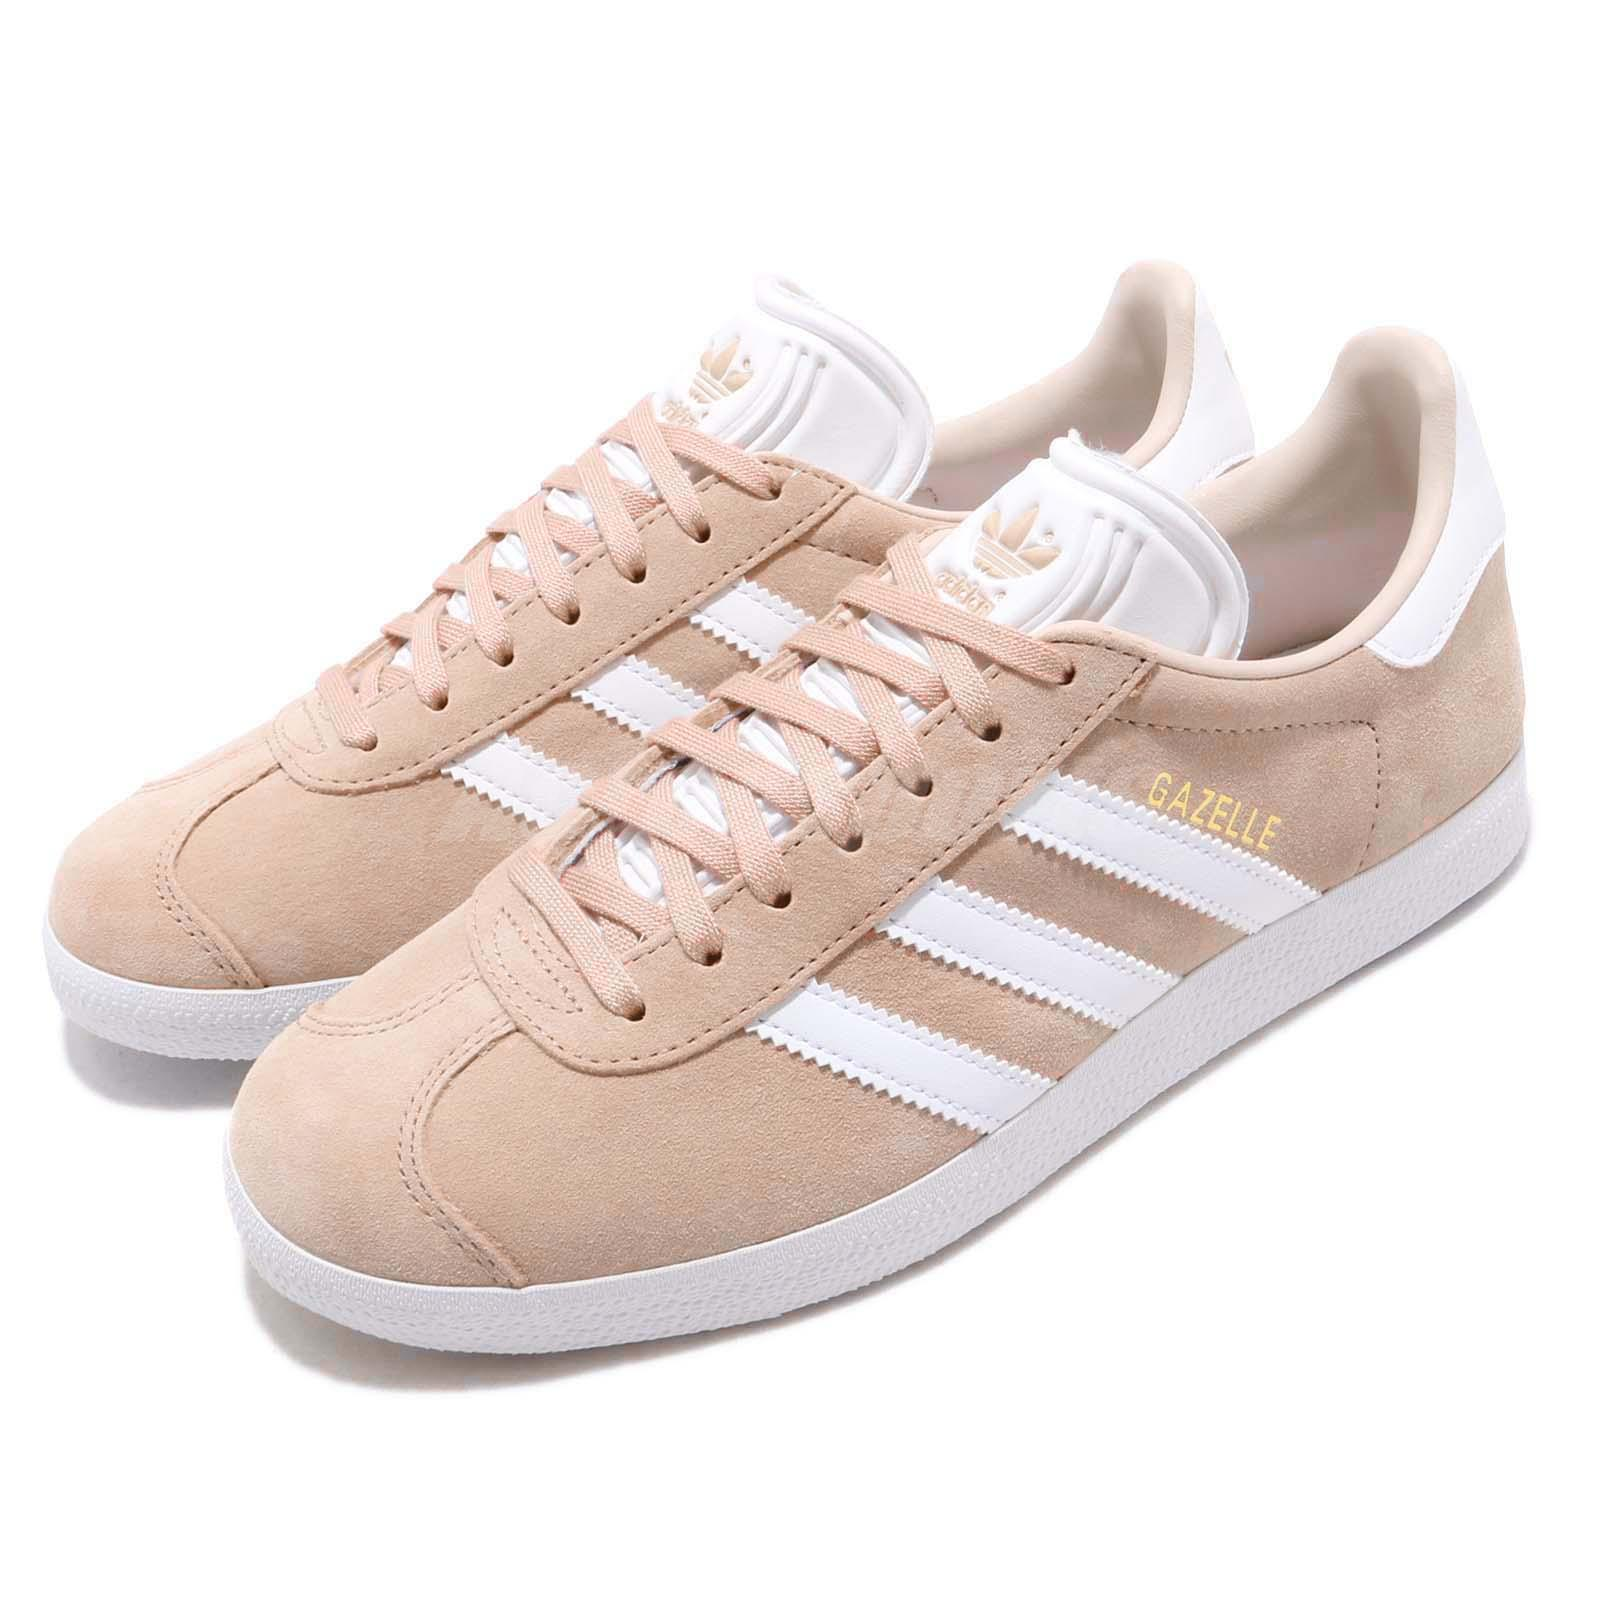 Details about adidas Originals Gazelle W Ash Pearl White Women Casual Shoes Sneakers B41660